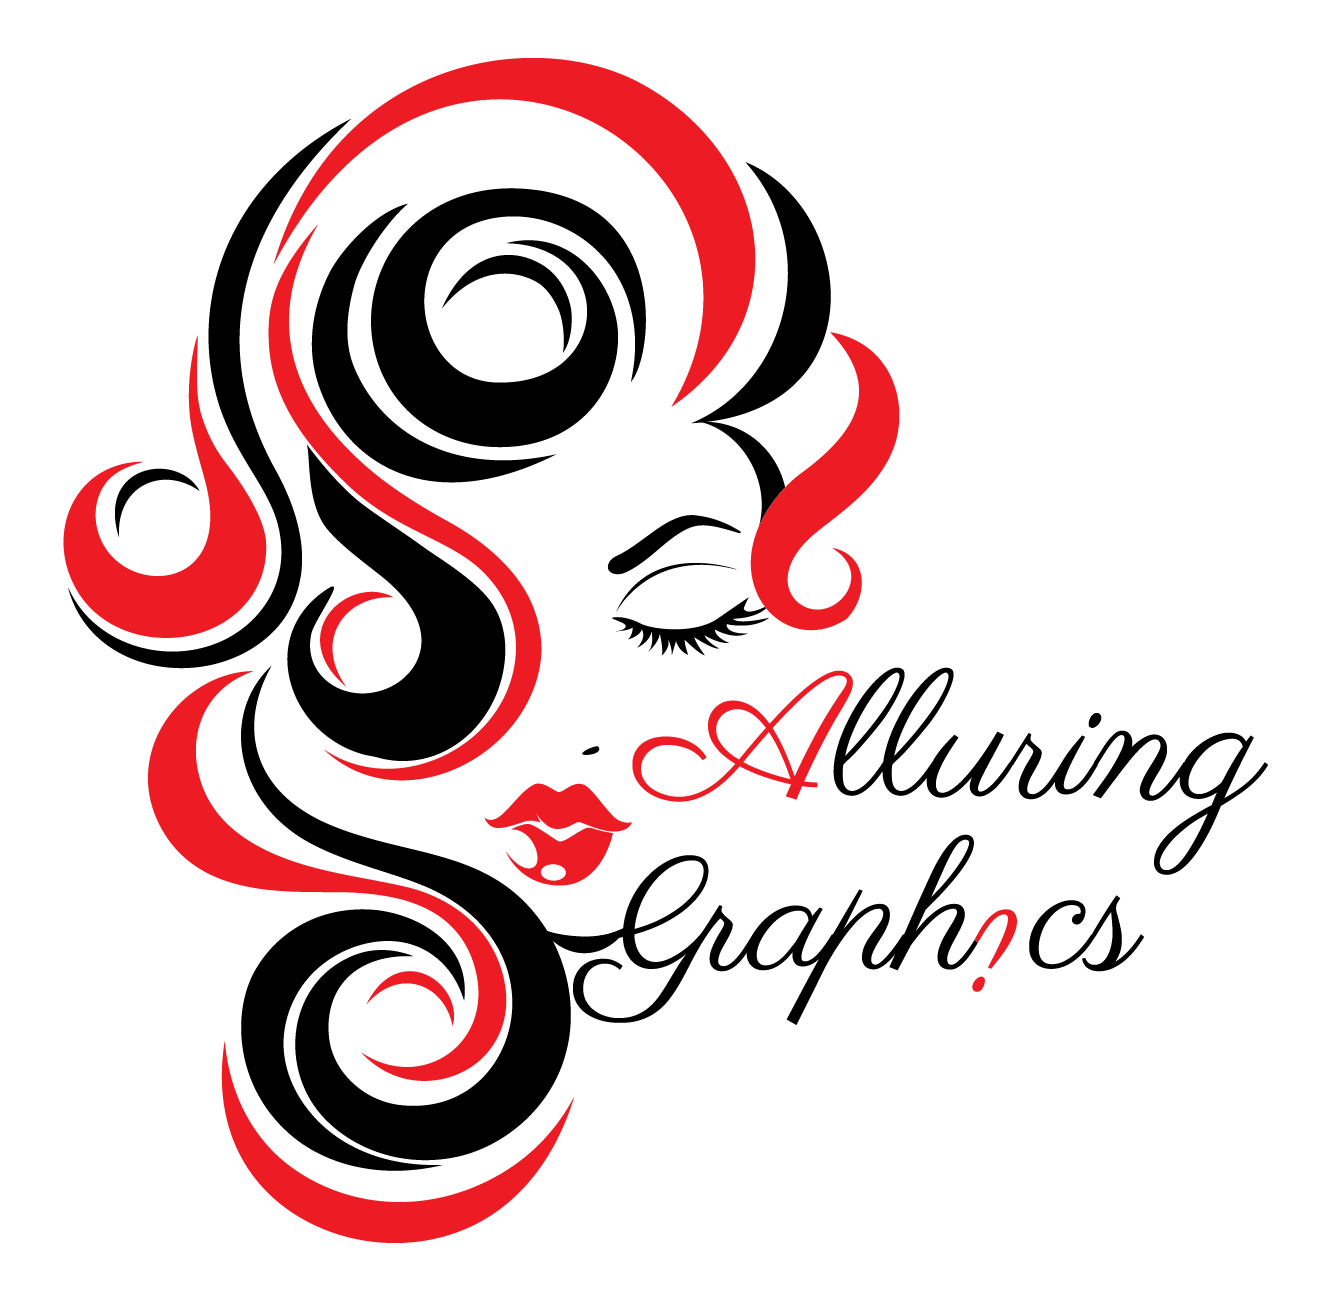 Alluring Graphics Logo. Woman with flowing curls or red and black hair